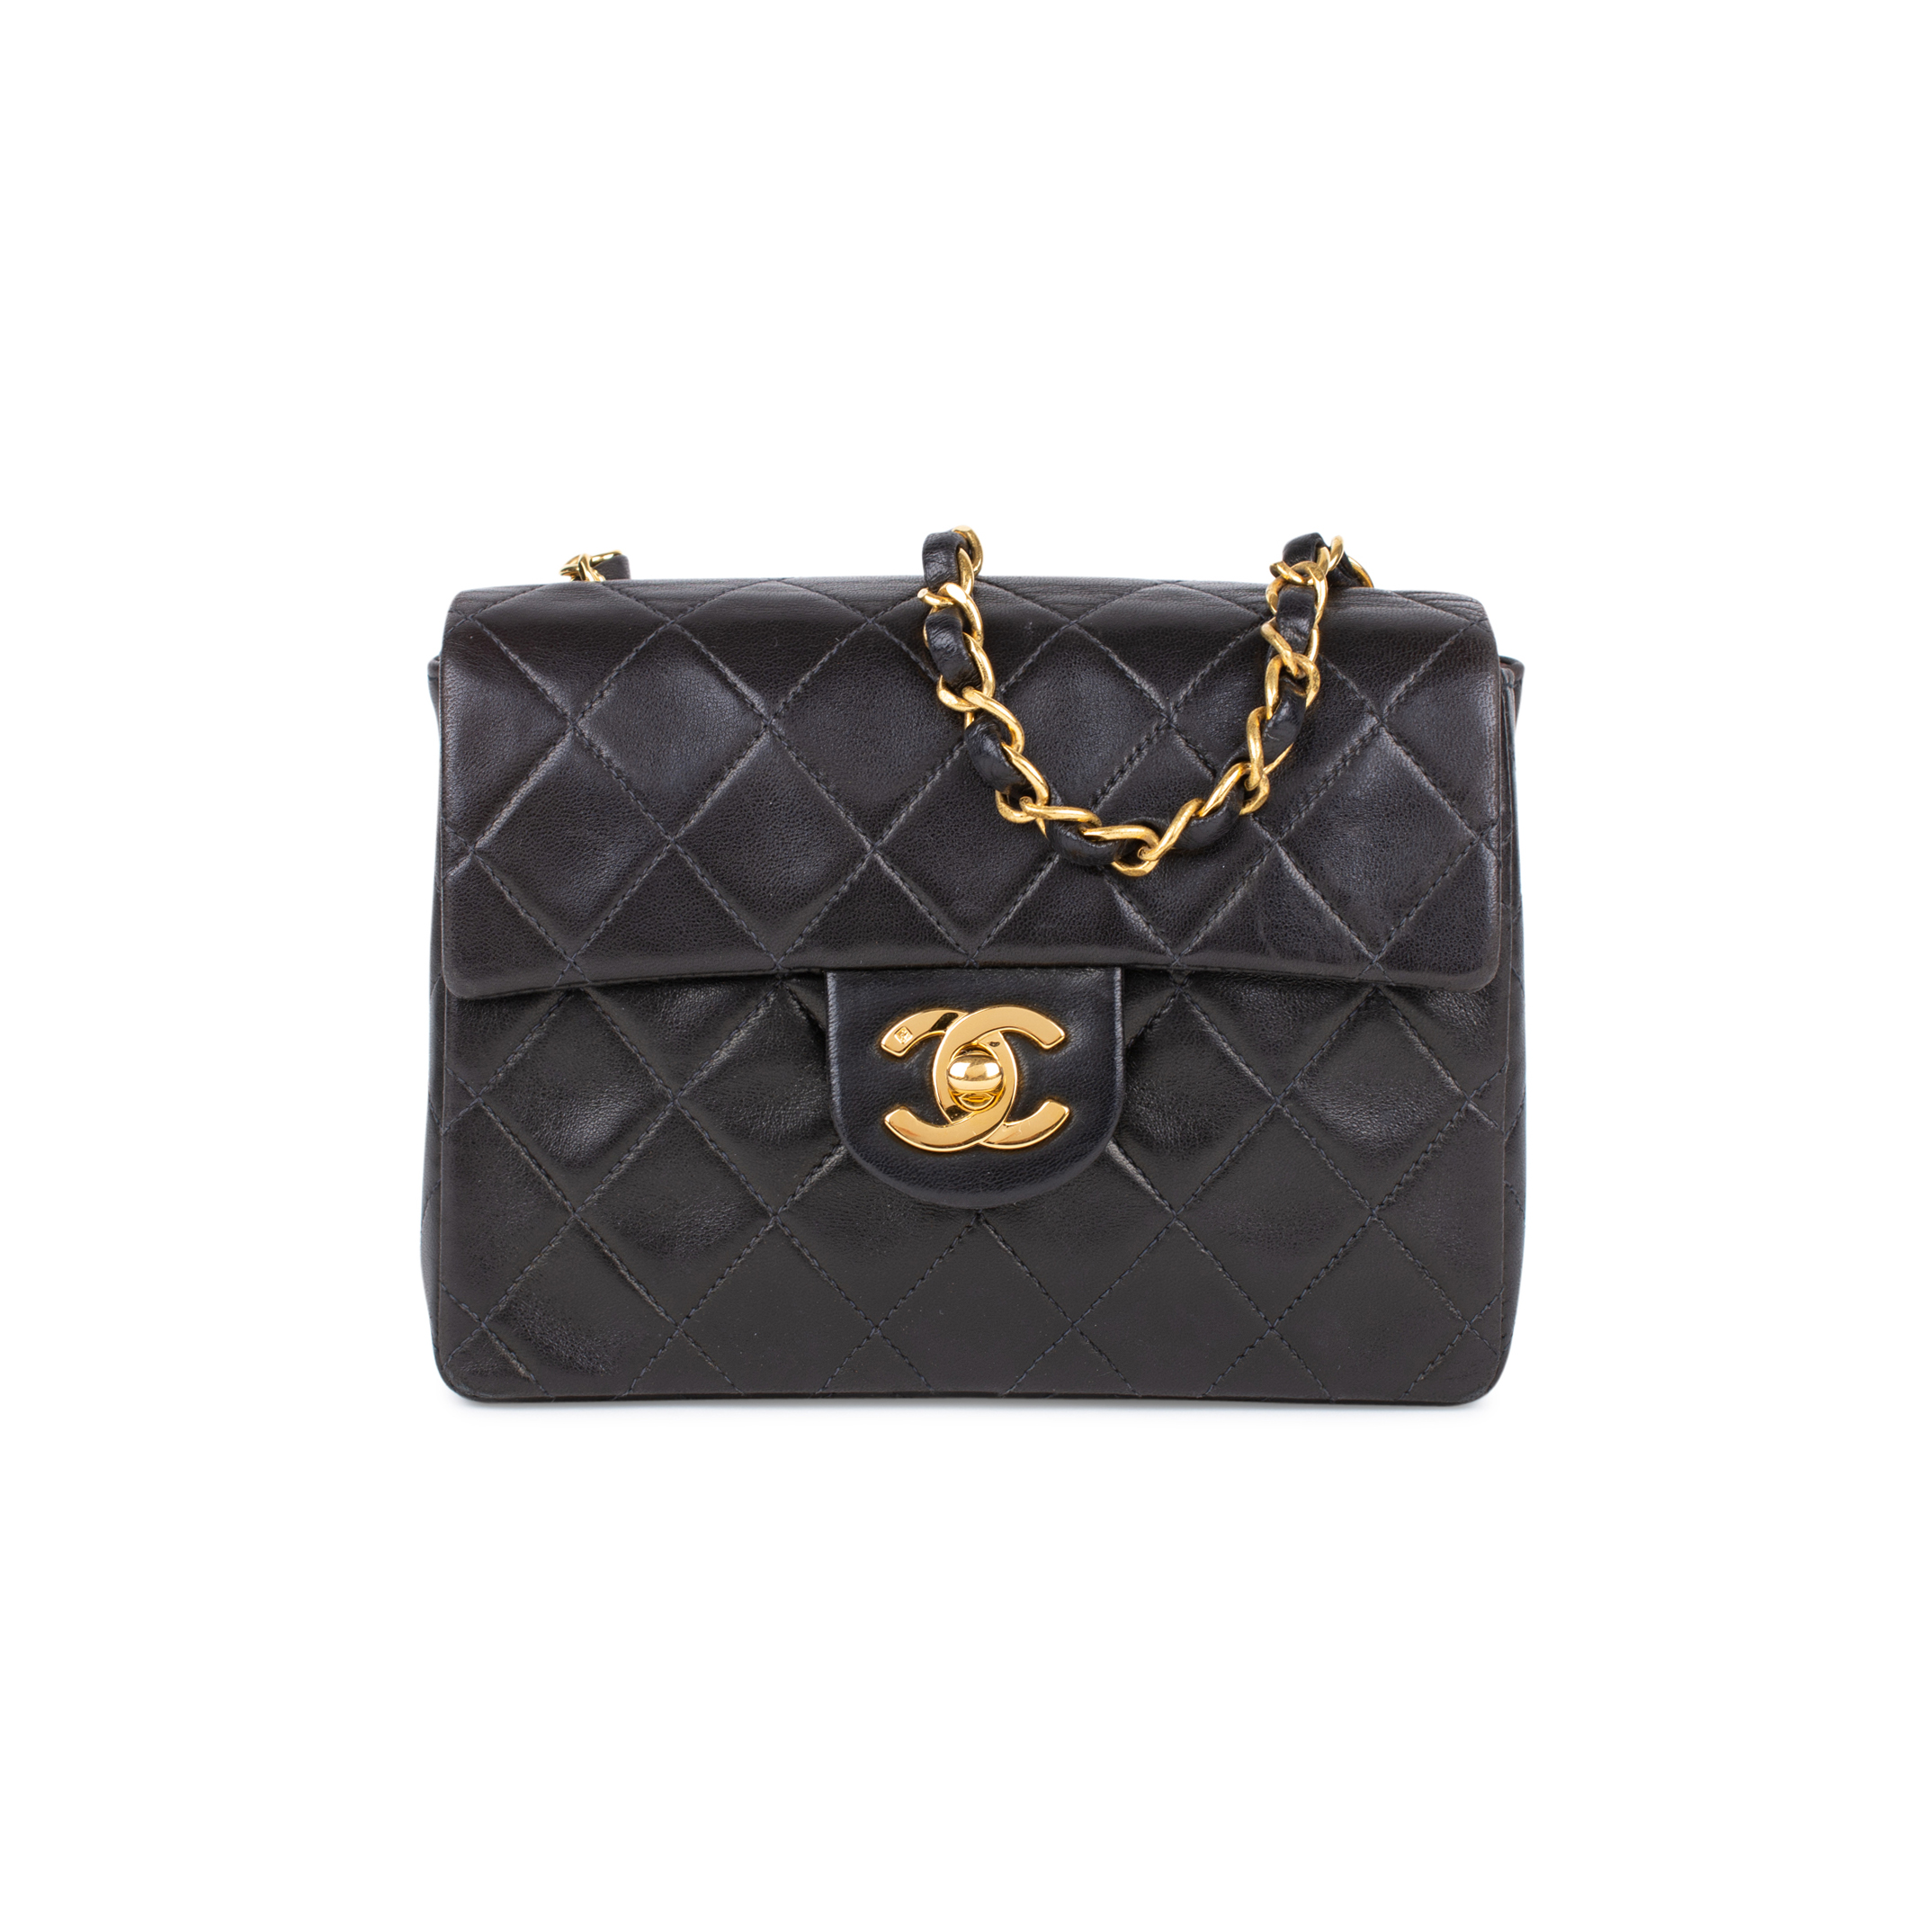 6f1d6197d534 Authentic Second Hand Chanel Mini Classic Flap Bag (PSS-515-00036) | THE  FIFTH COLLECTION